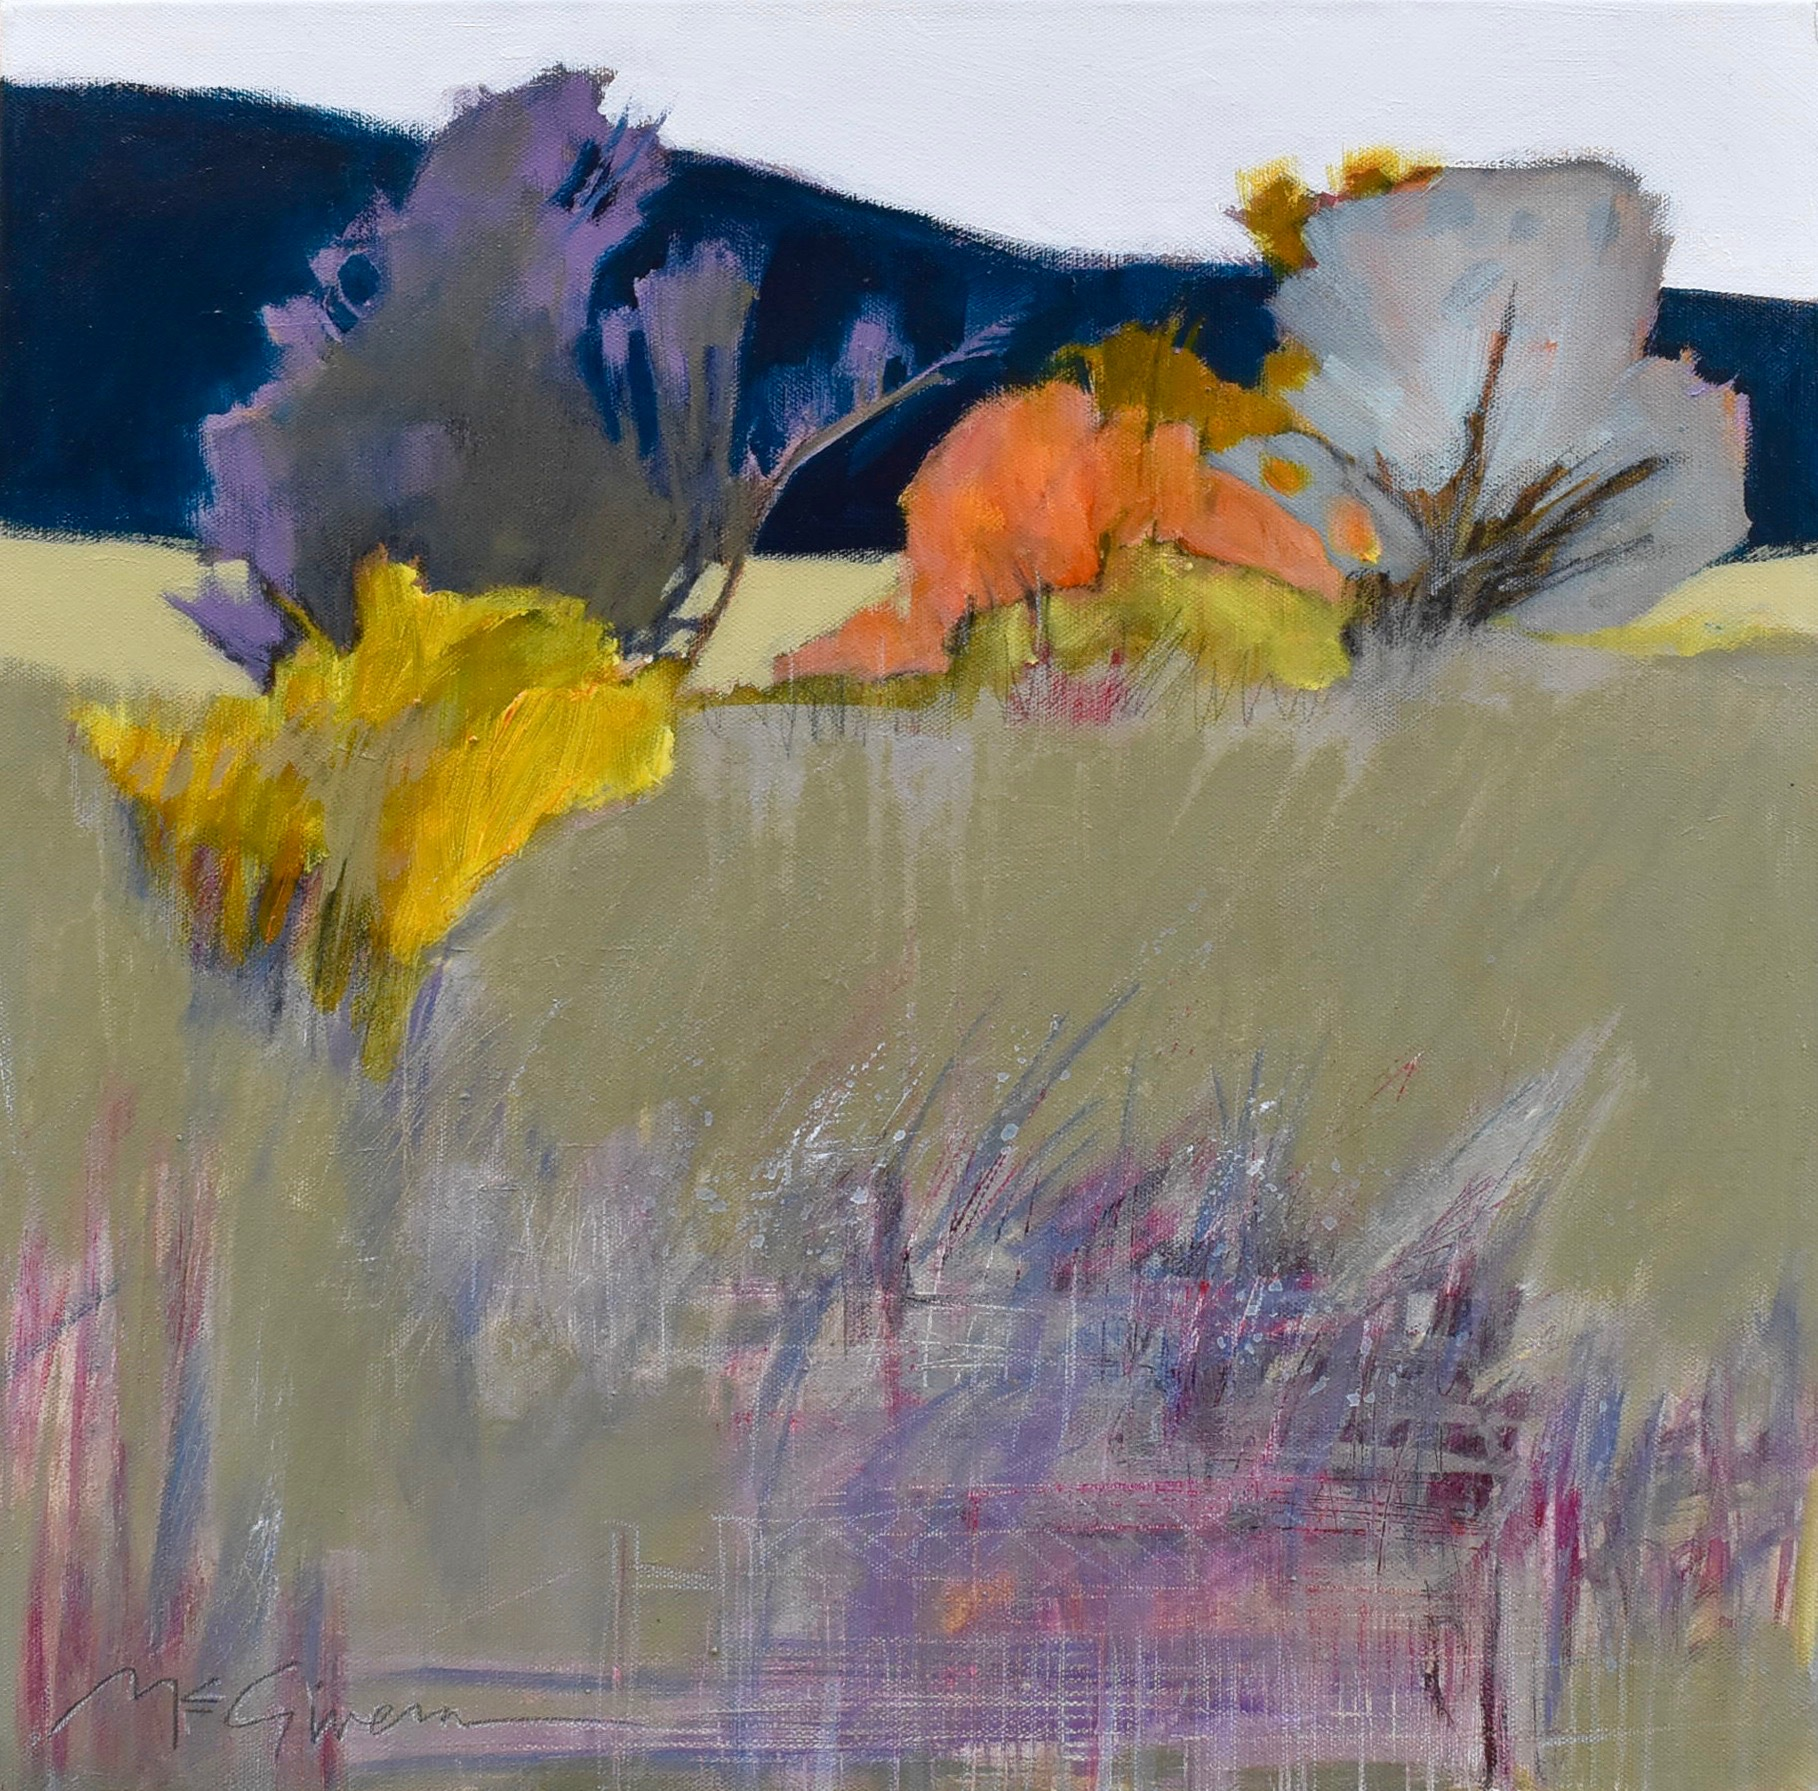 Wild Asparagus by  Peggy McGivern - Masterpiece Online